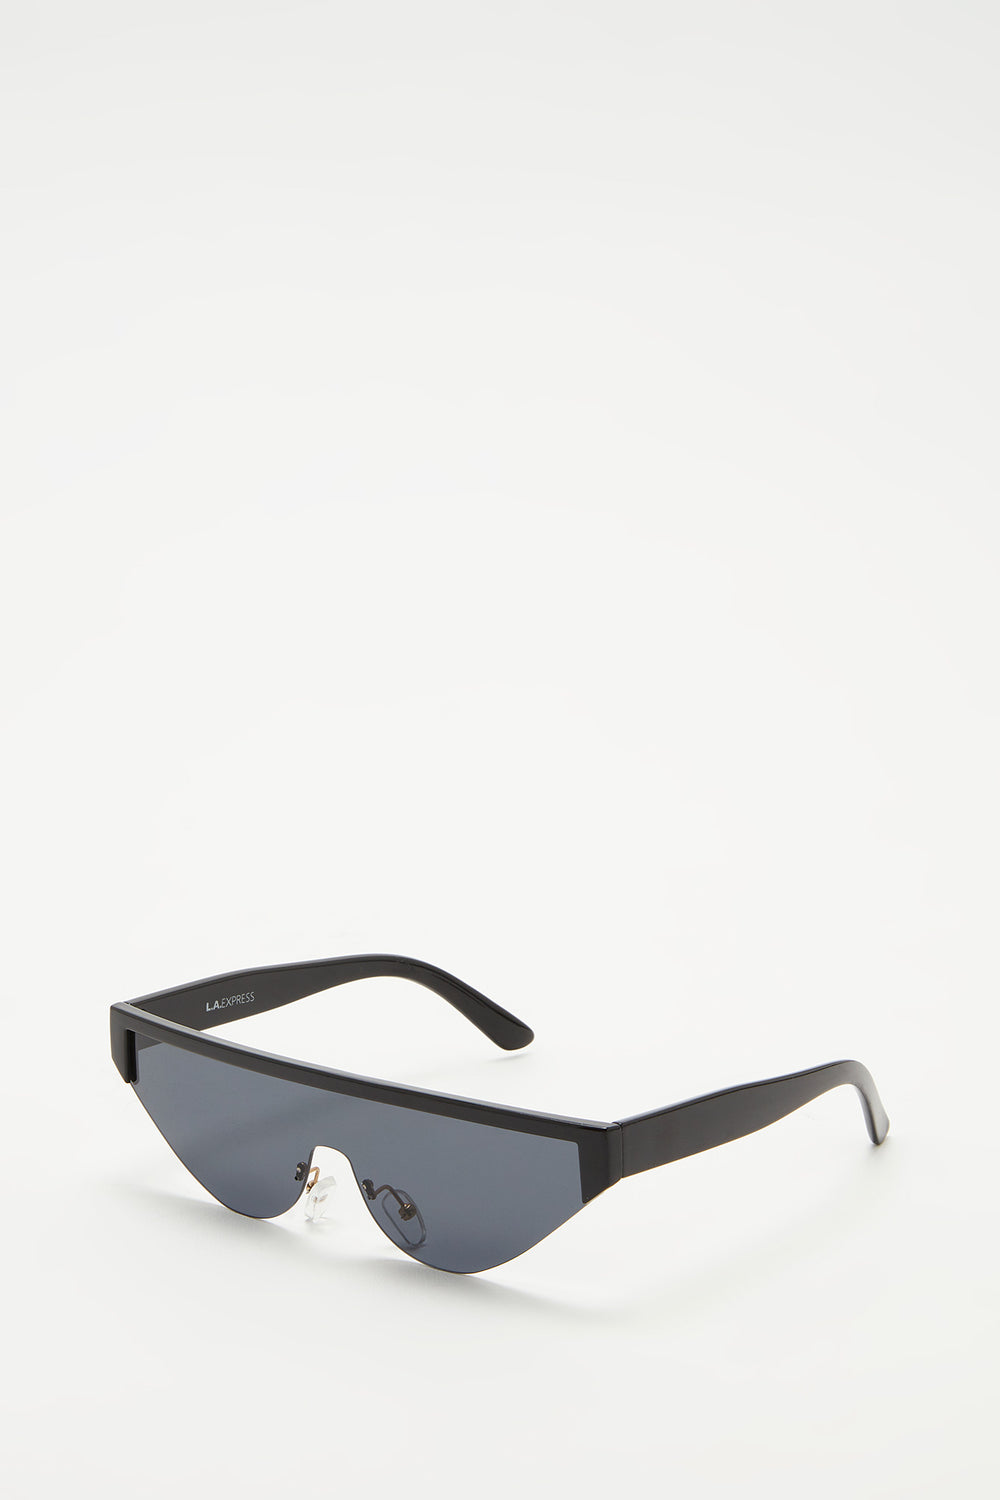 Semi-Rimless Cat Eye Sunglasses Plaid